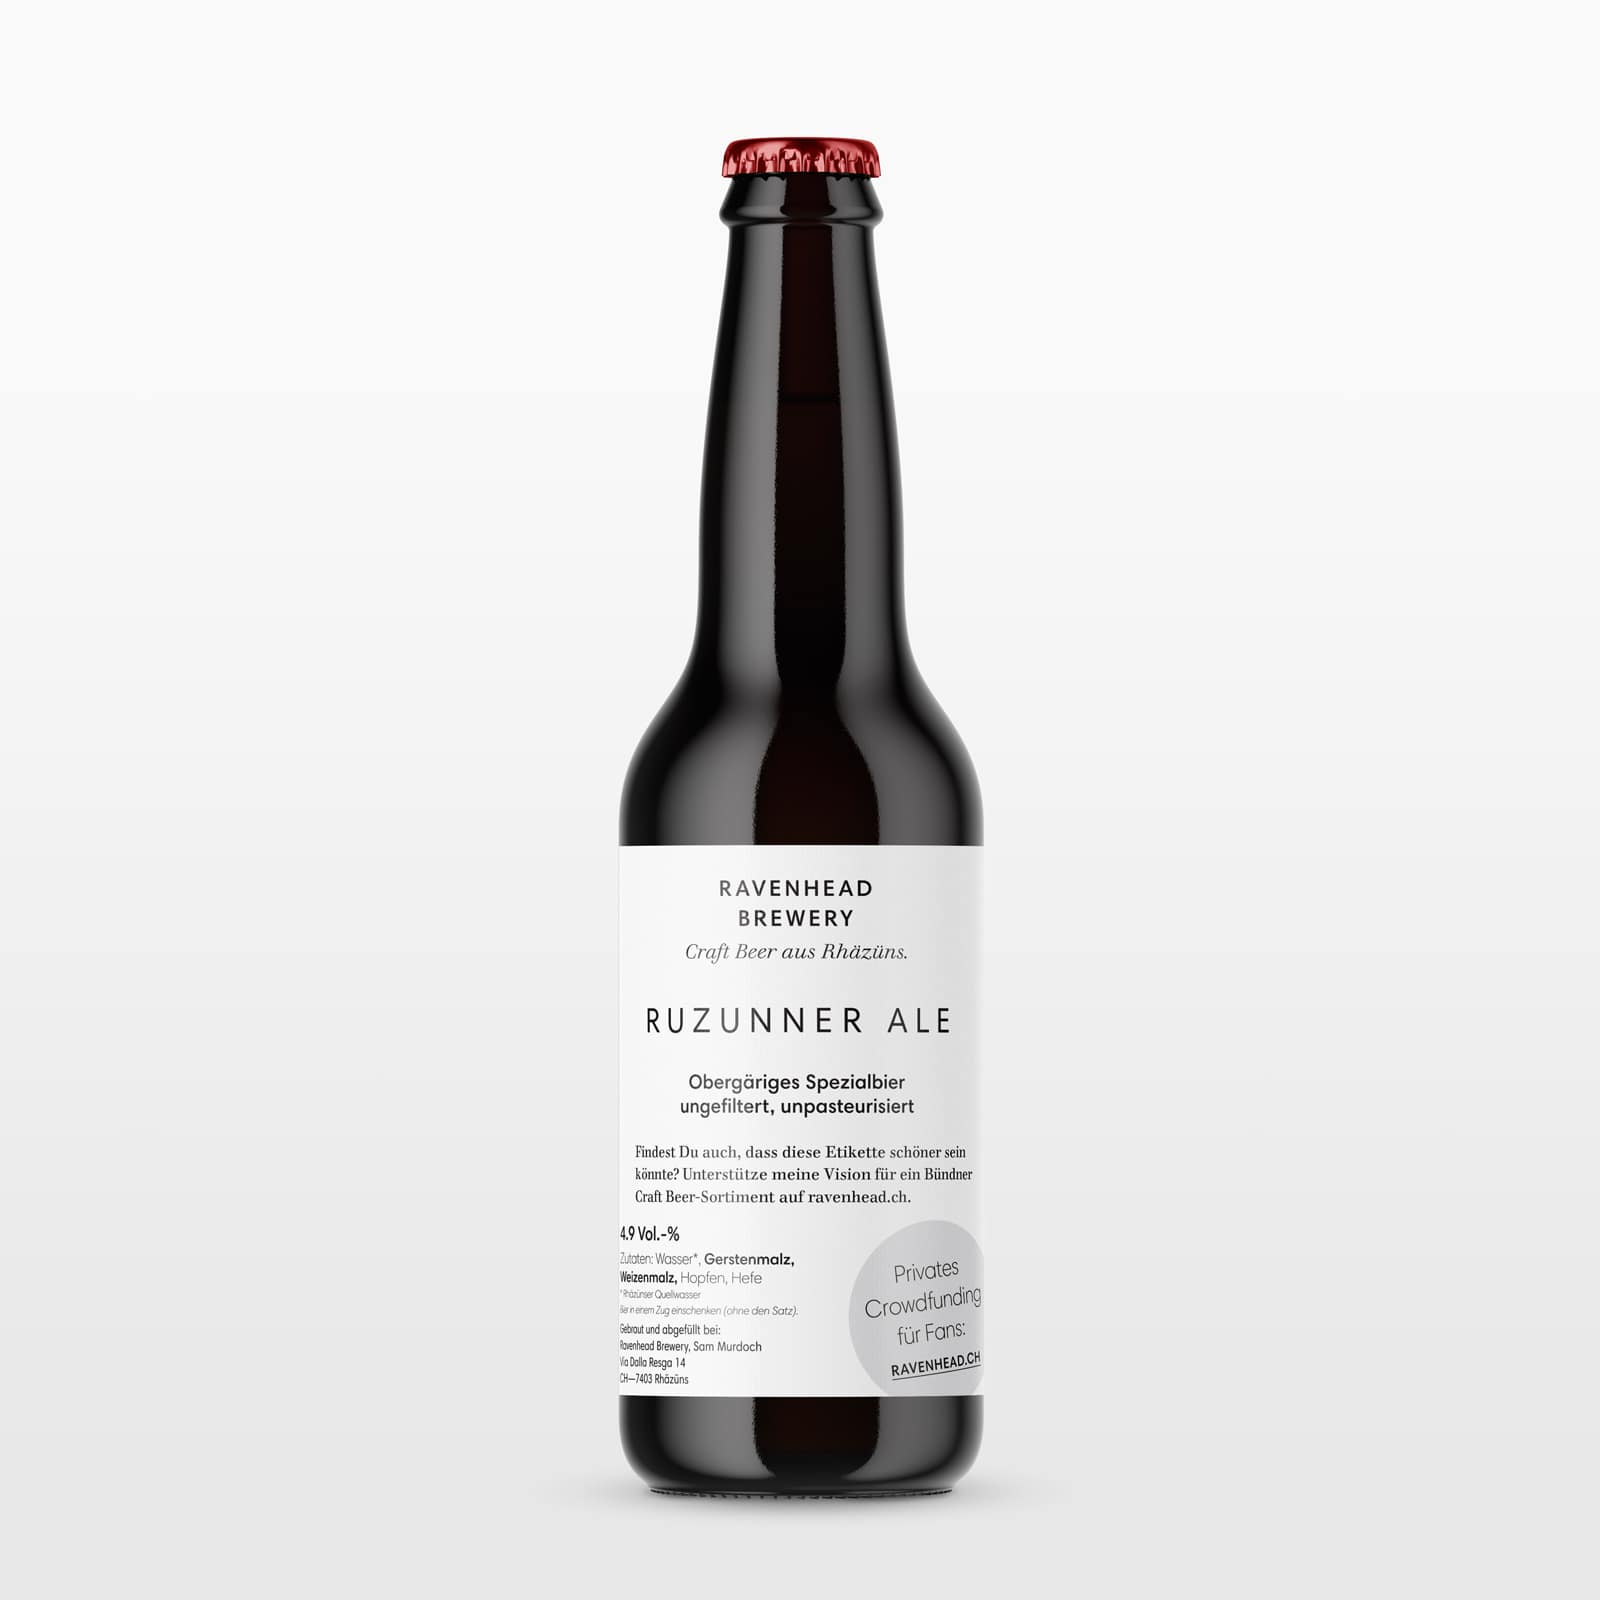 The first beer from Ravenhead: Ruzunner Ale